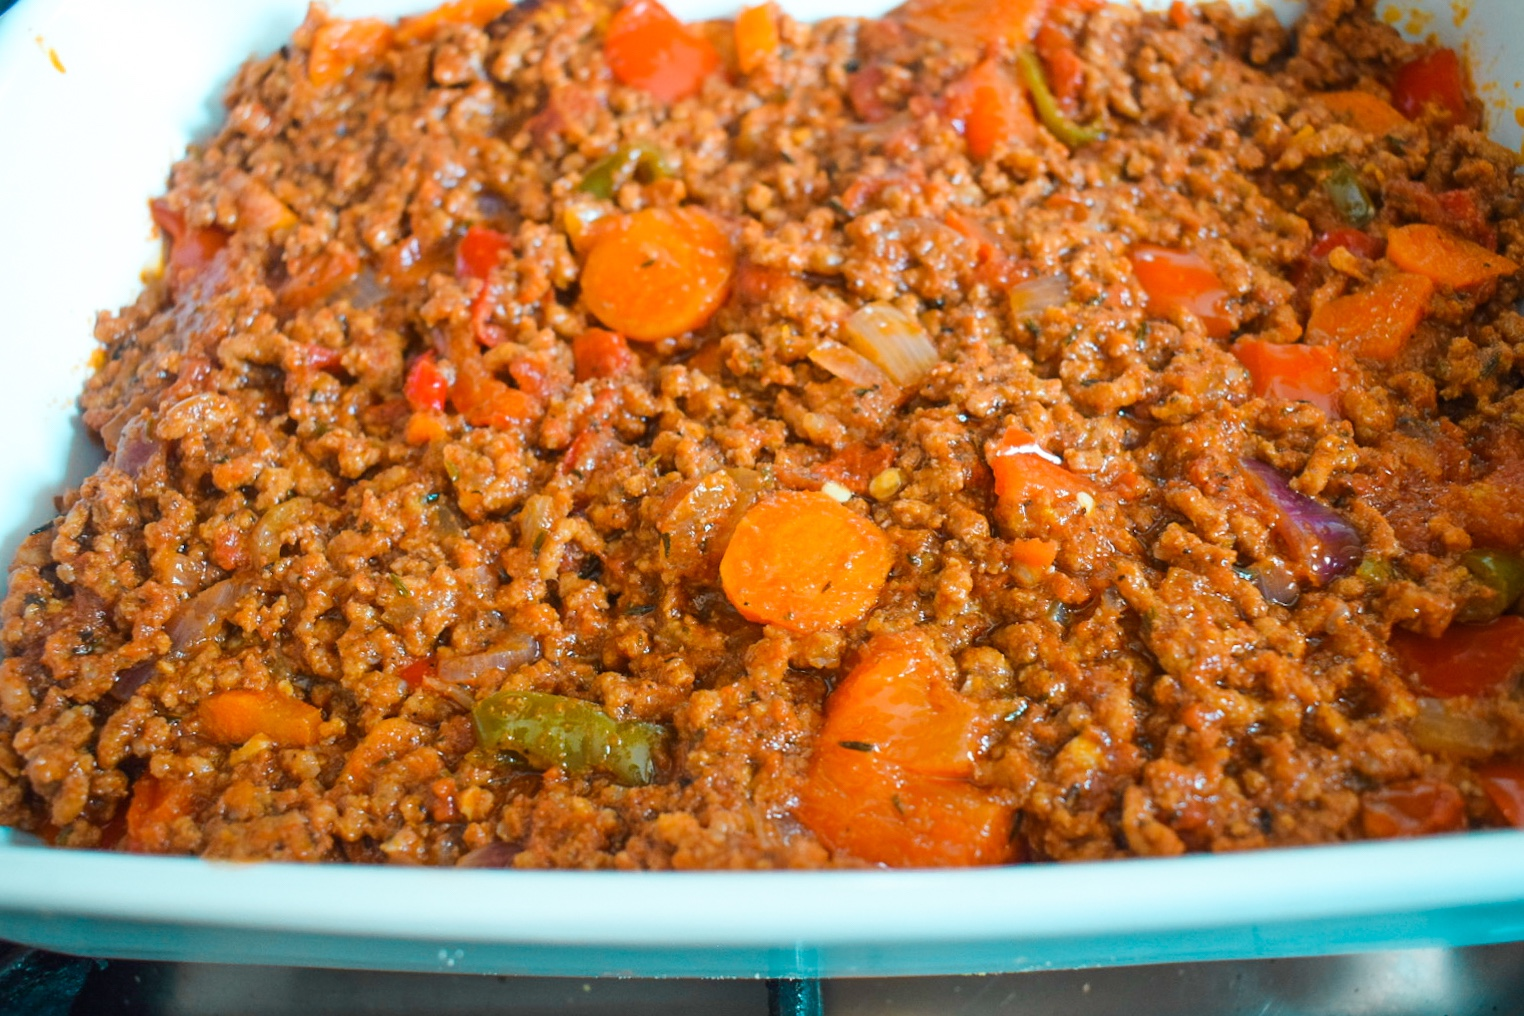 Tomato based beef sauce in casserole dish